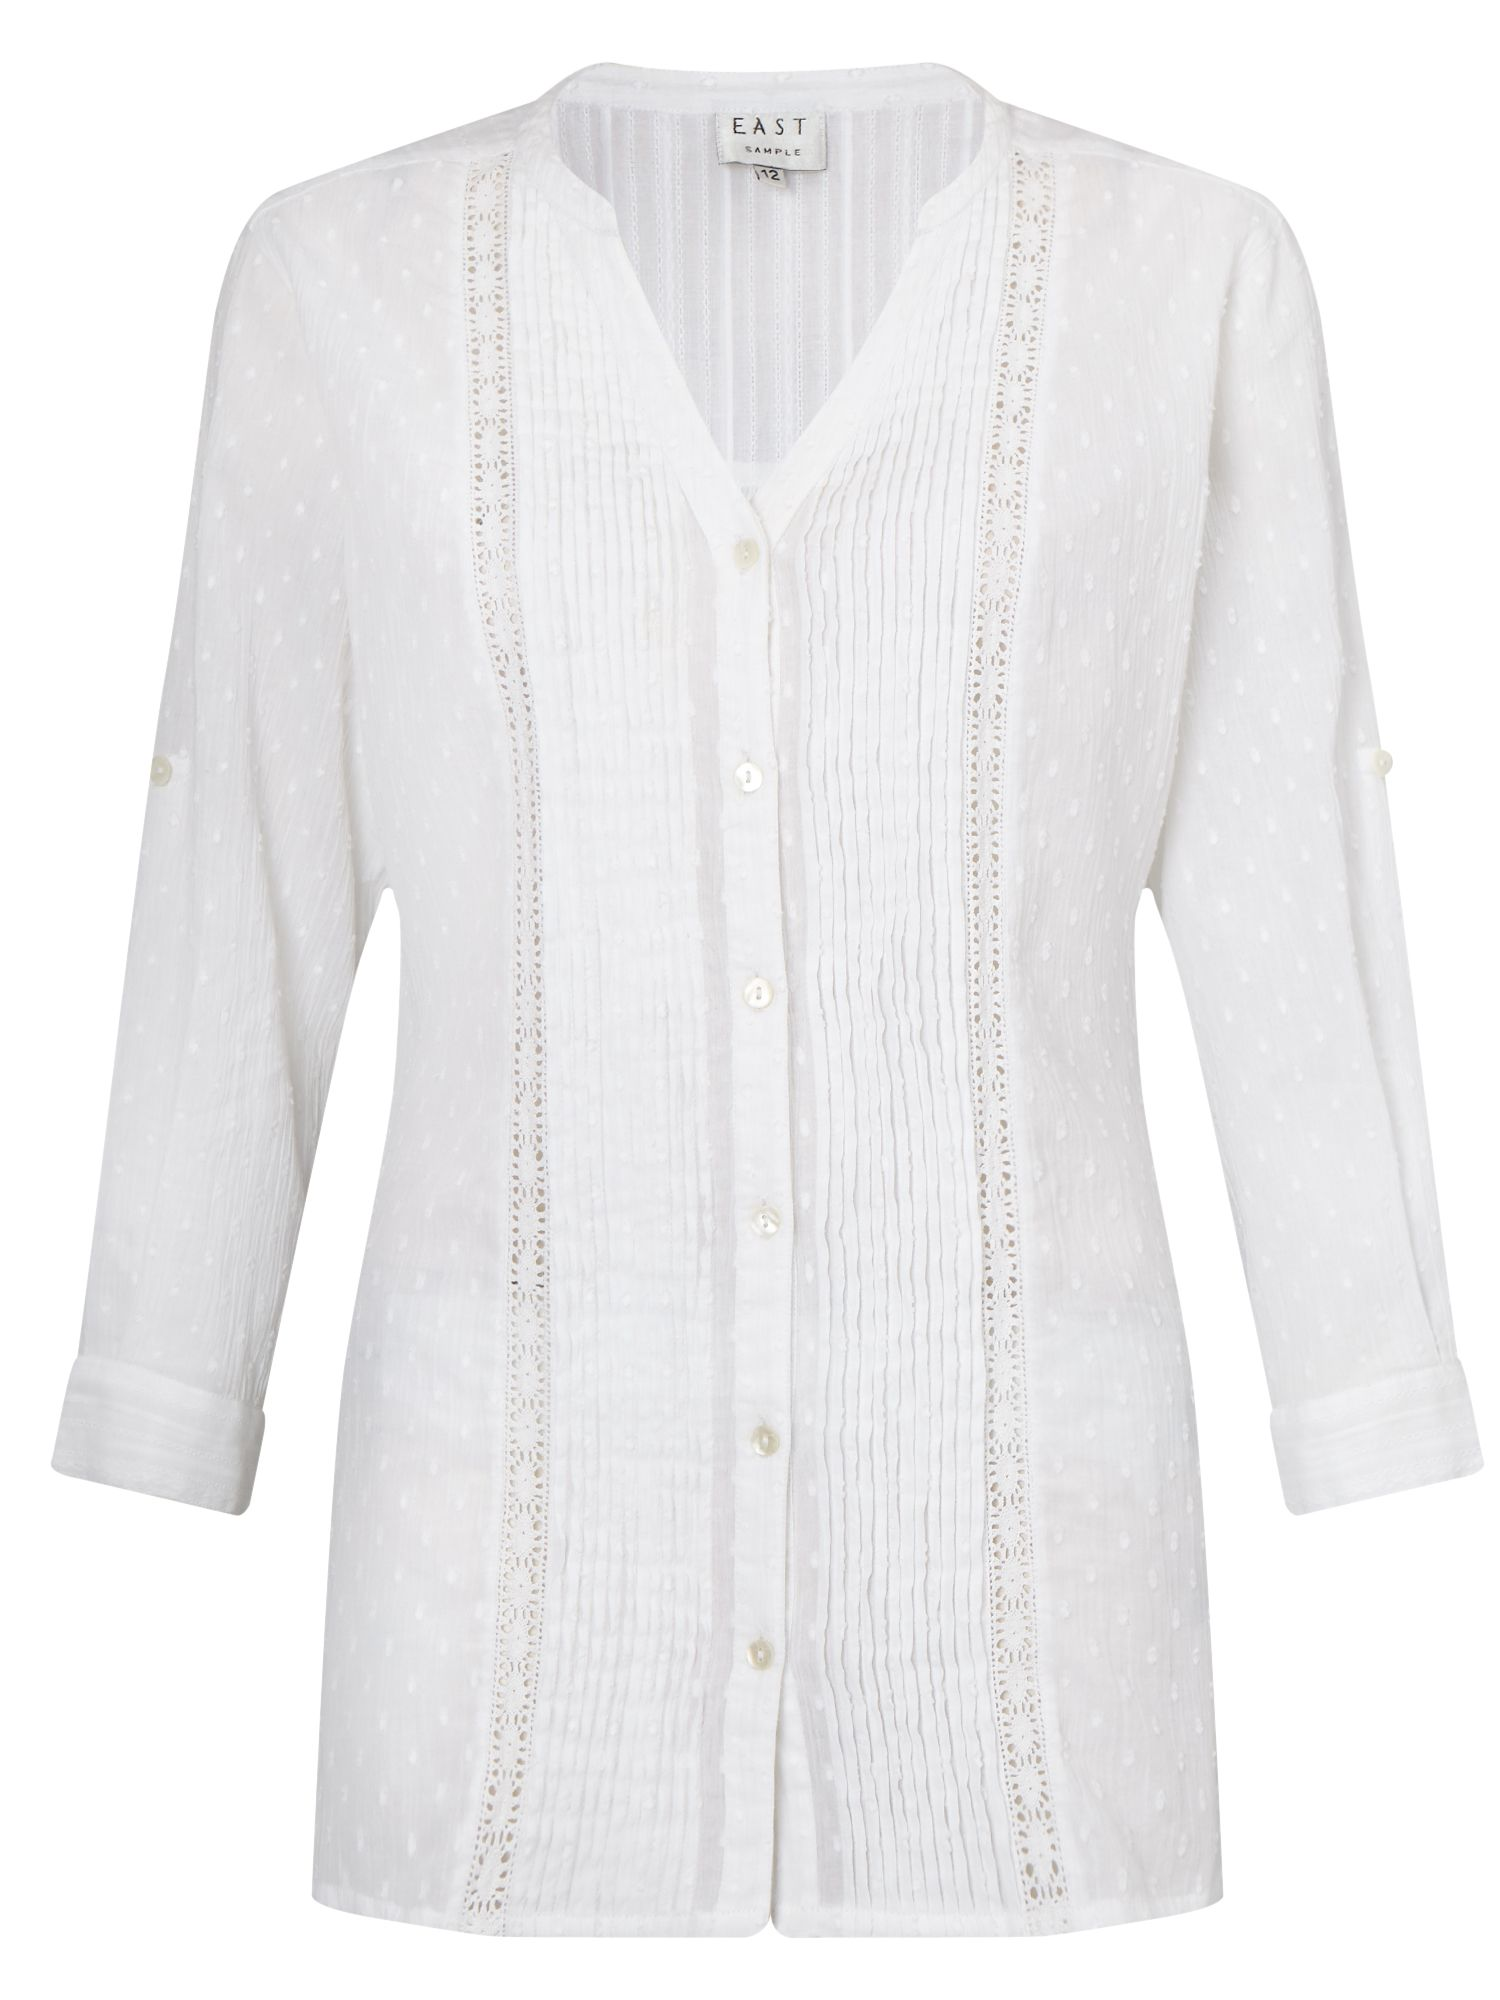 East Mixed Pintuck Dobby Shirt, White